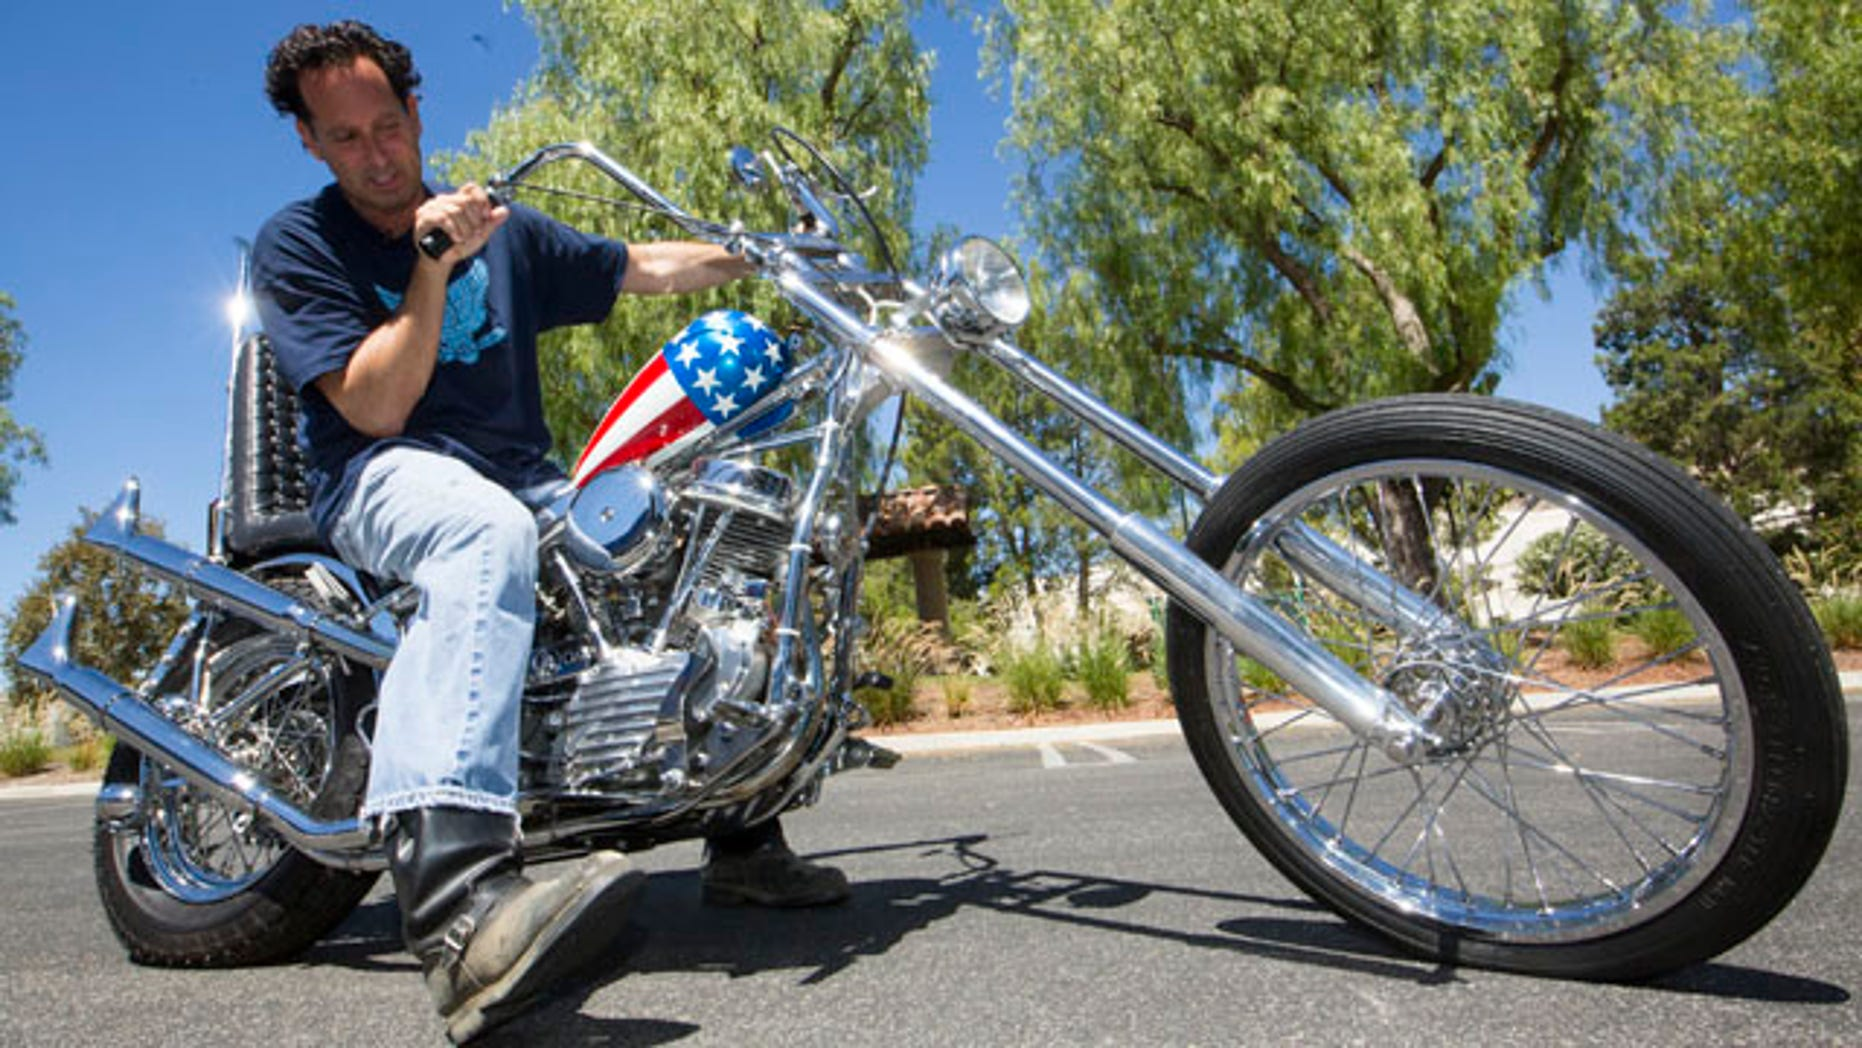 September 4, 2014: In this Thursday, Sept. 4, 2014 photo, Michael Eisenberg sits on the customized Captain America chopper Peter Fonda rode in Easy Rider at the Profiles in History auction house in Calabasas, Calif.  (AP Photo/Damian Dovarganes)